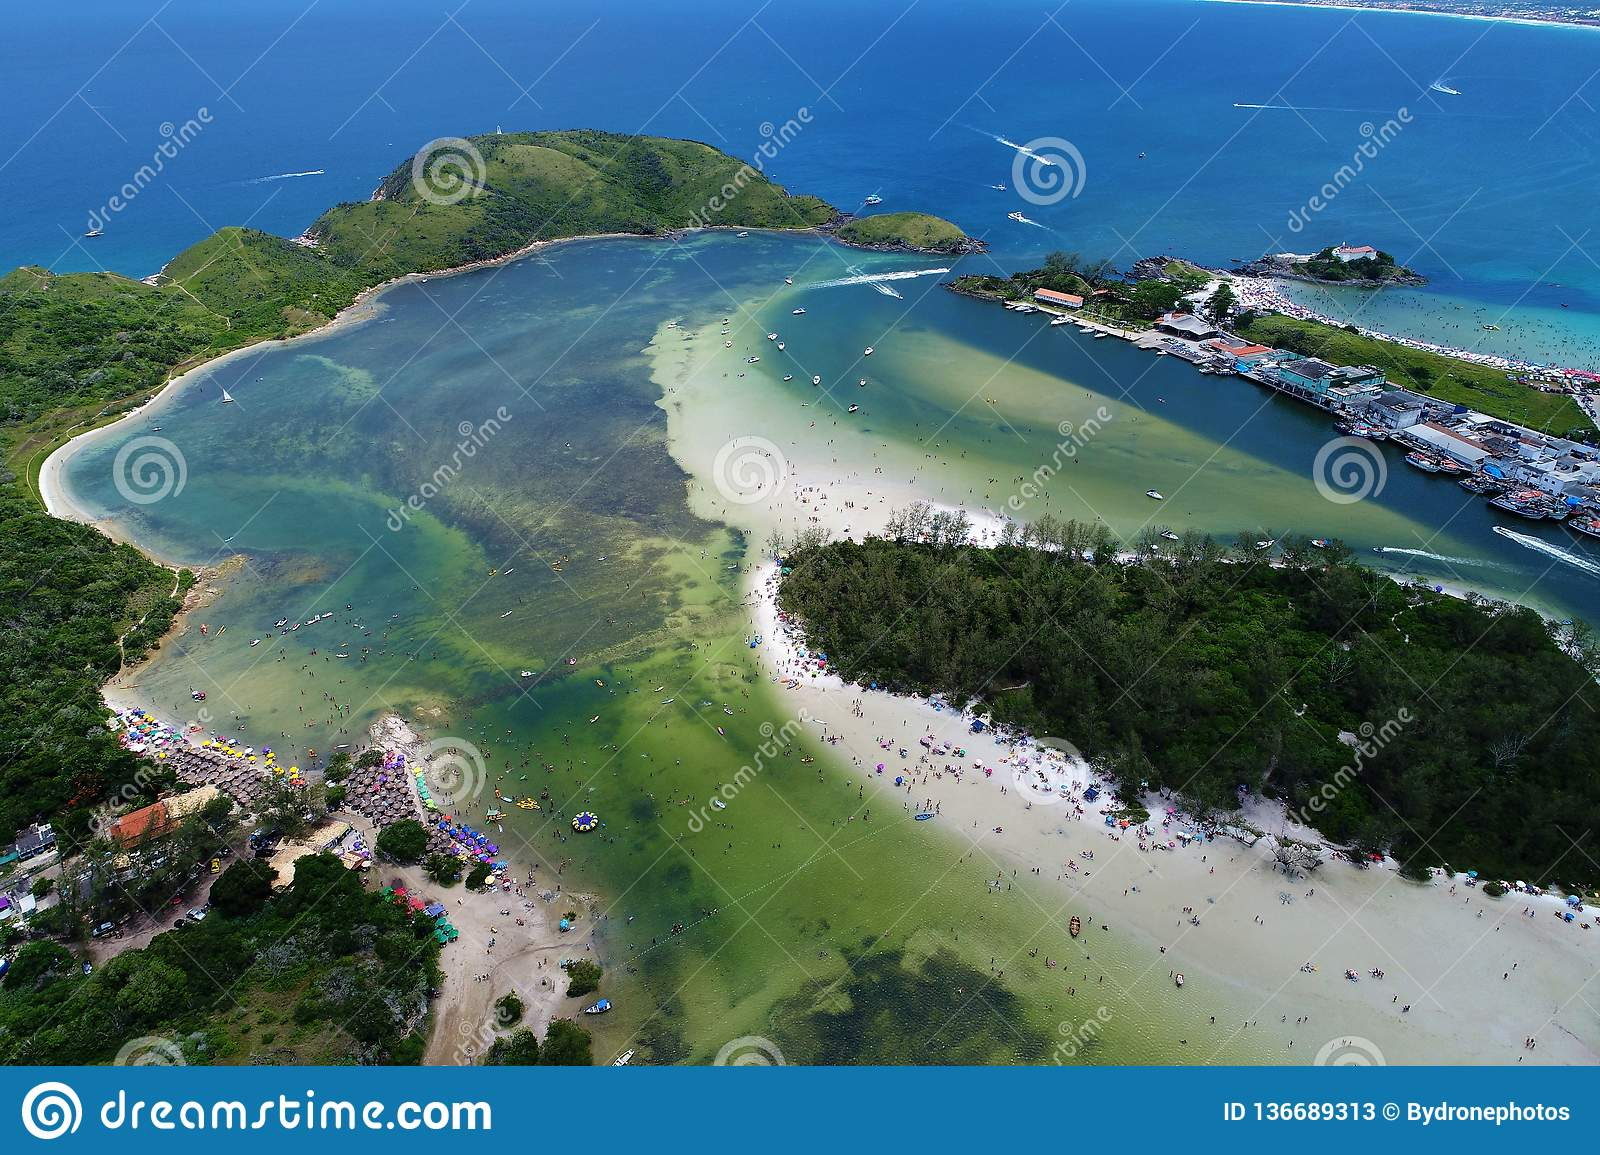 Cabo Frio, Brazil: View of Japanese Island with crystal water.